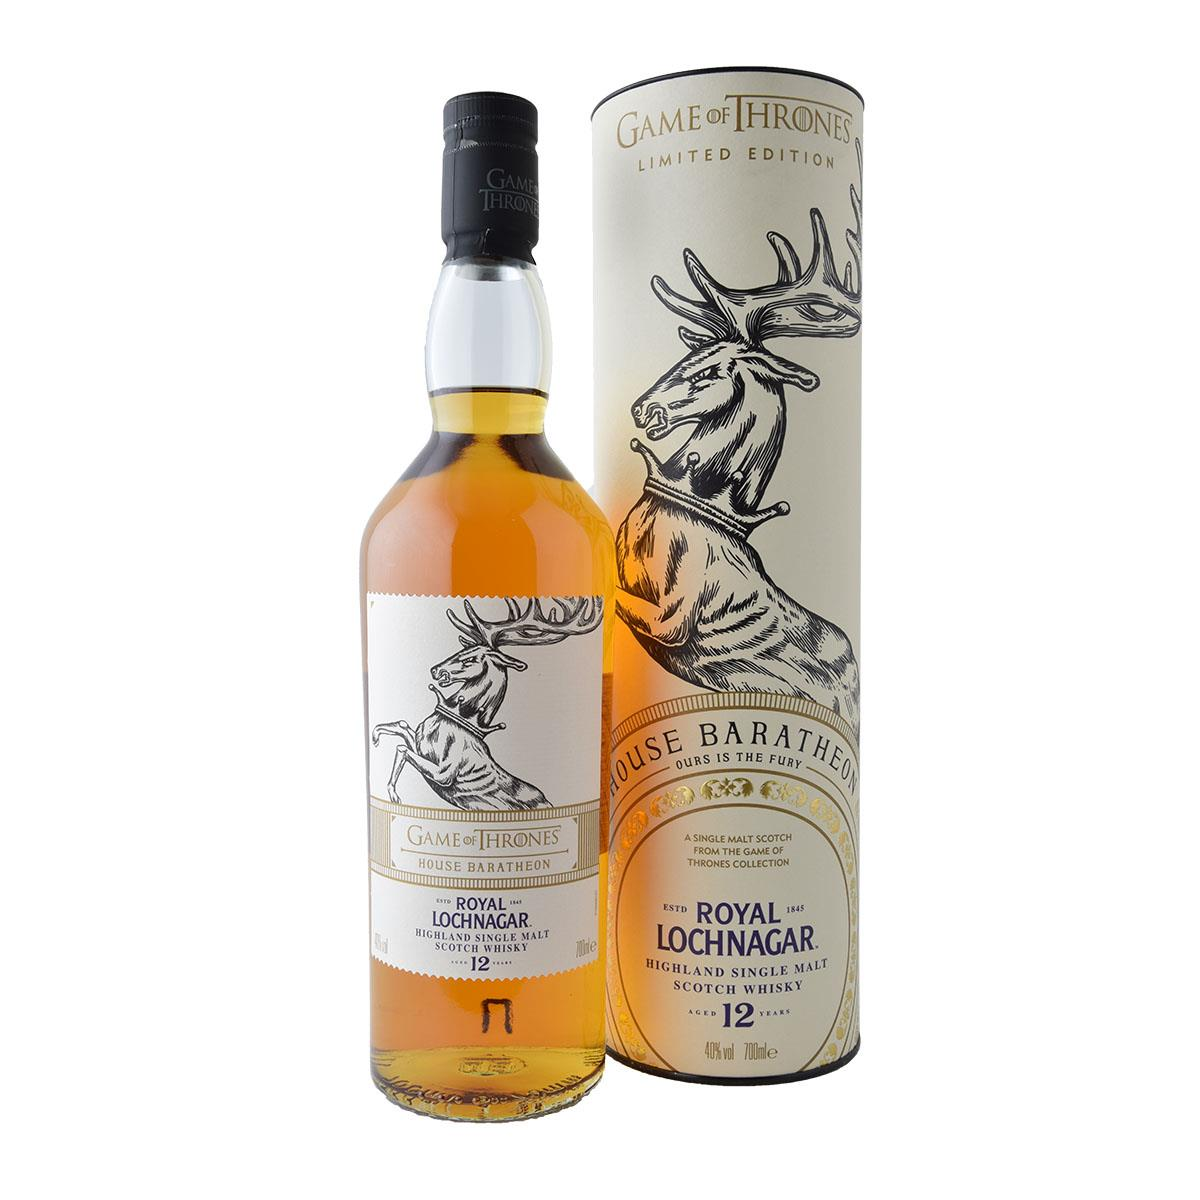 Royal Lochnagar 12 y.o. Game of Thrones 700ml